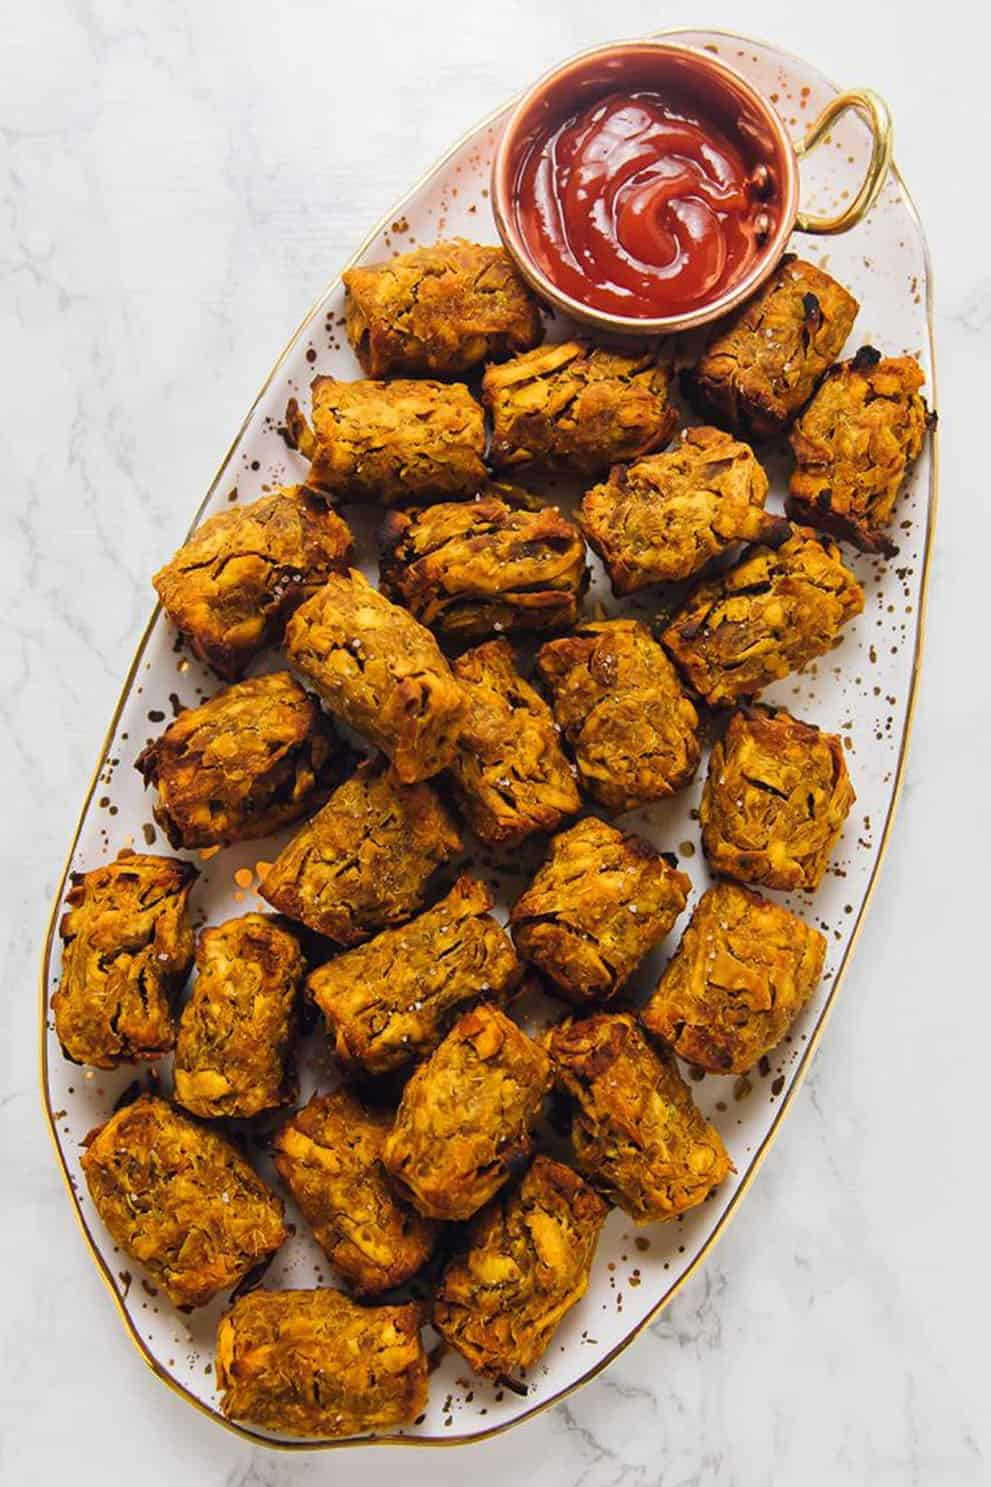 SWEET POTATO TATER TOTS (7 INGREDIENTS & VEGANby Jessica in the kitchen: these delicious, easy and vegan appetizers are perfect to please a crowd!